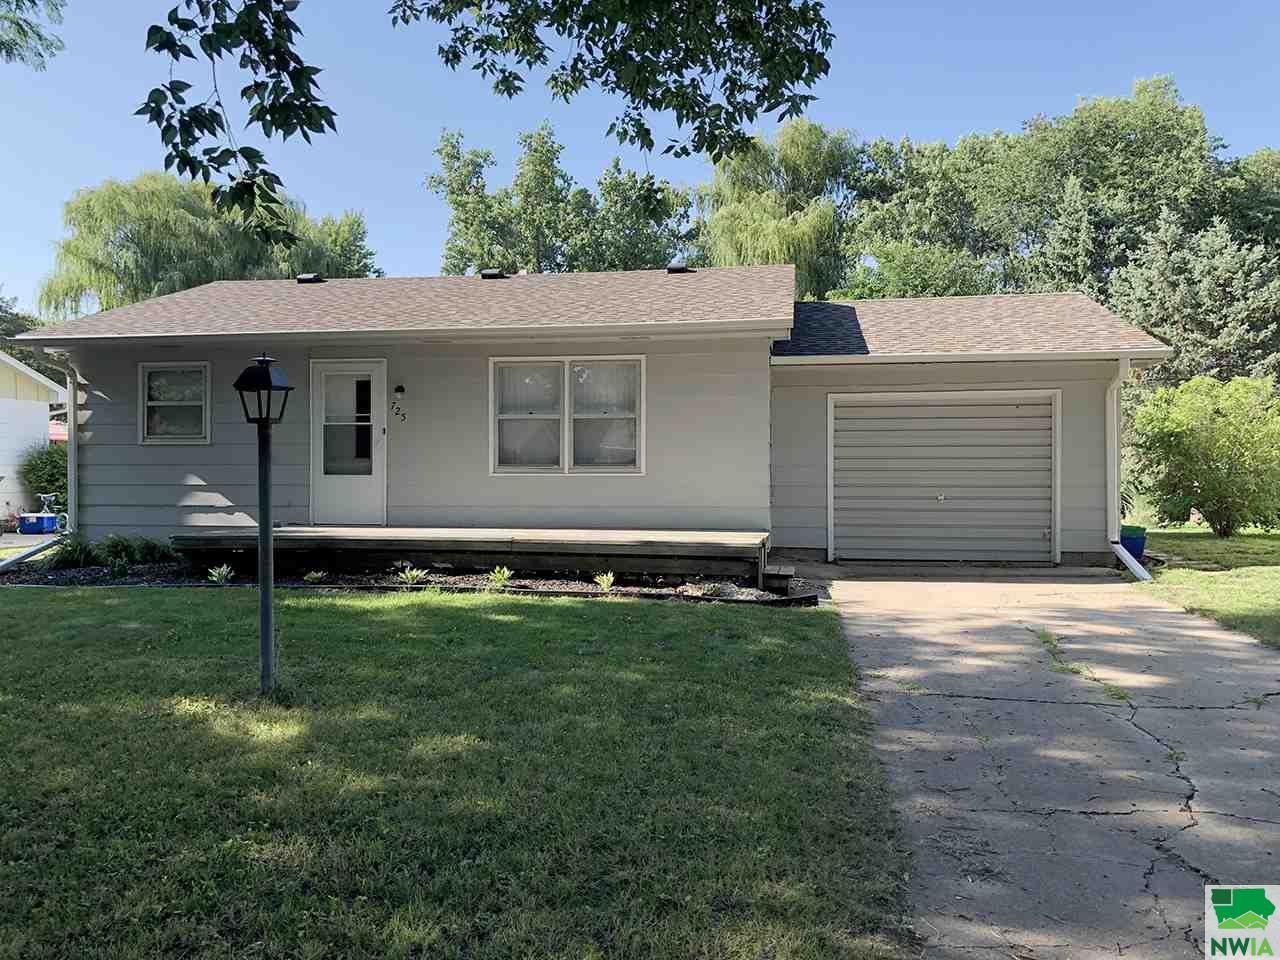 Property for sale at 725 W Clark, Vermillion,  SD 57069